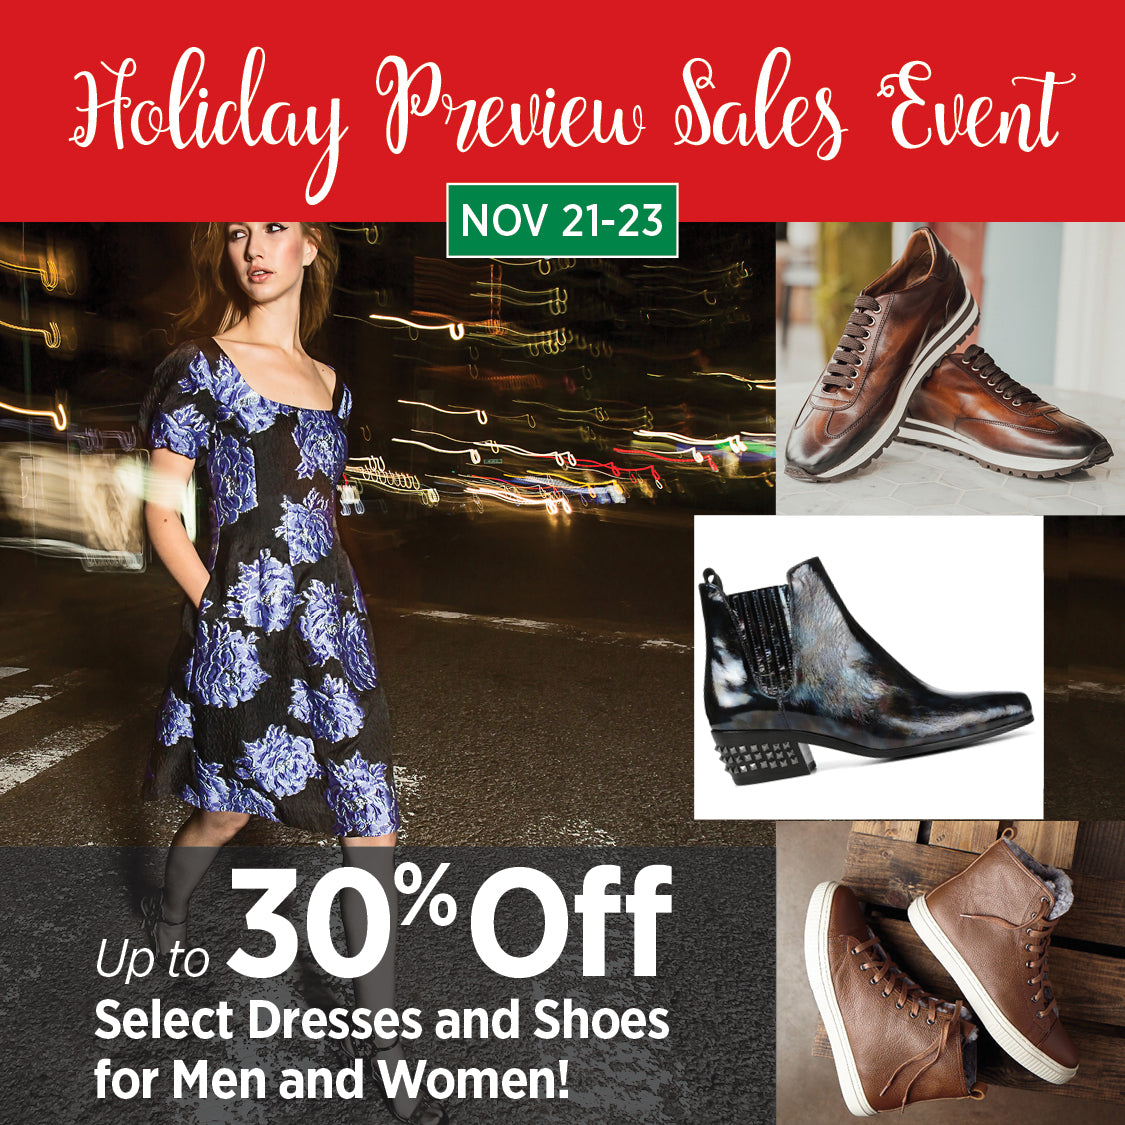 Holiday Preview Sales Event